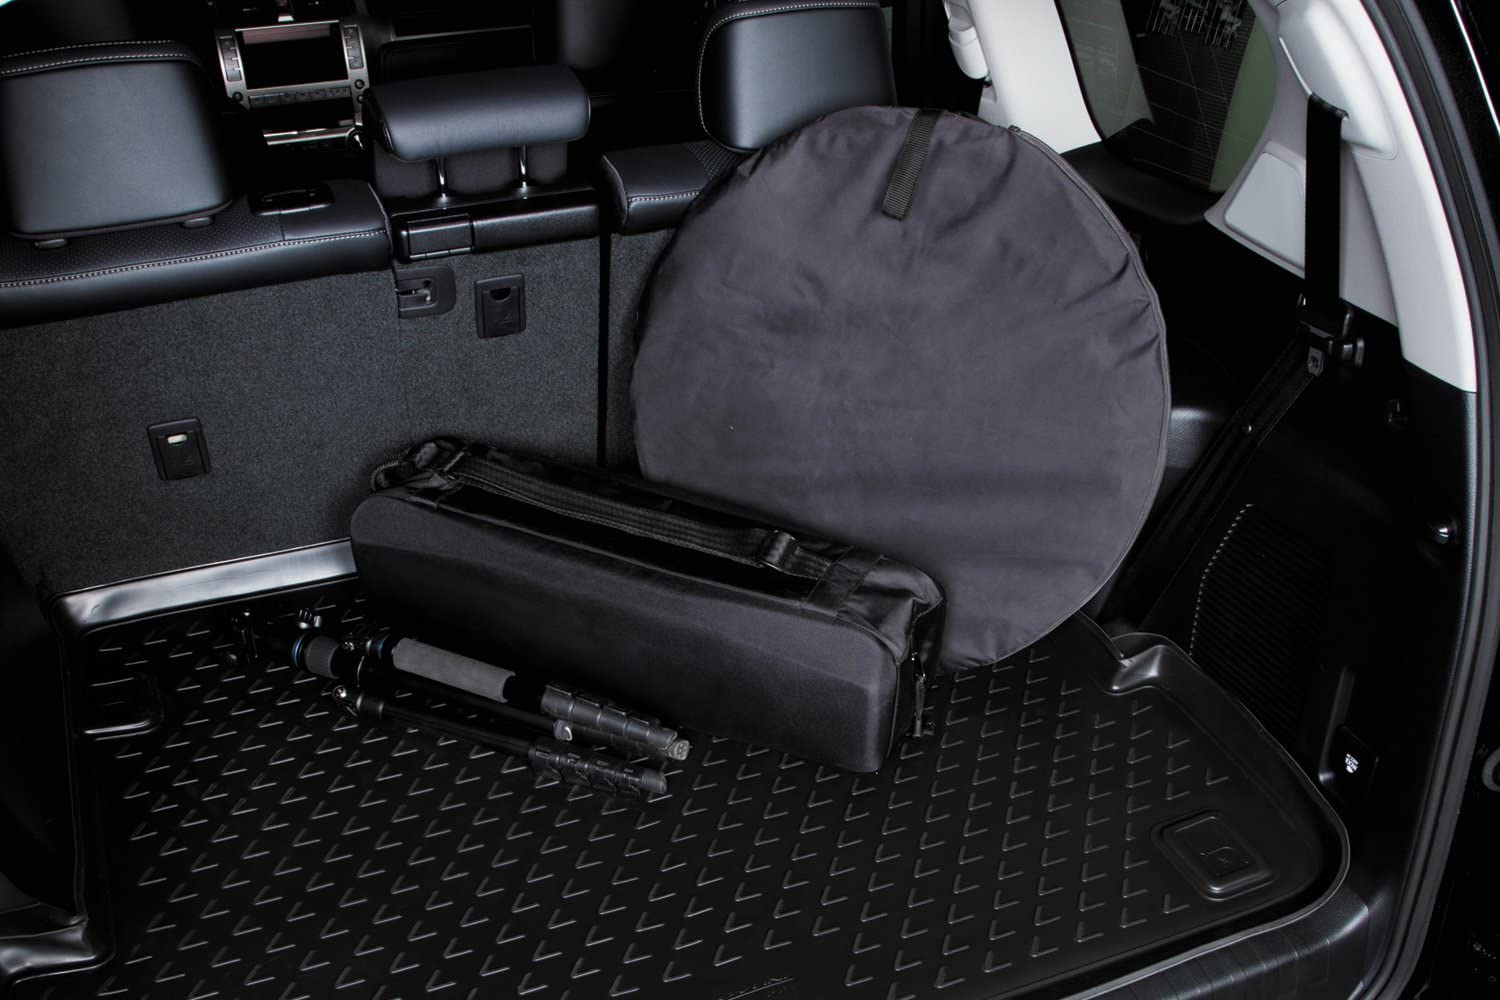 Black R5 AUTOMOTIVE Fits 2019-2021 Hyundai Santa Fe Custom Fit Cargo Liner Trunk Floor Mat for 5 Passenger Models All Weather